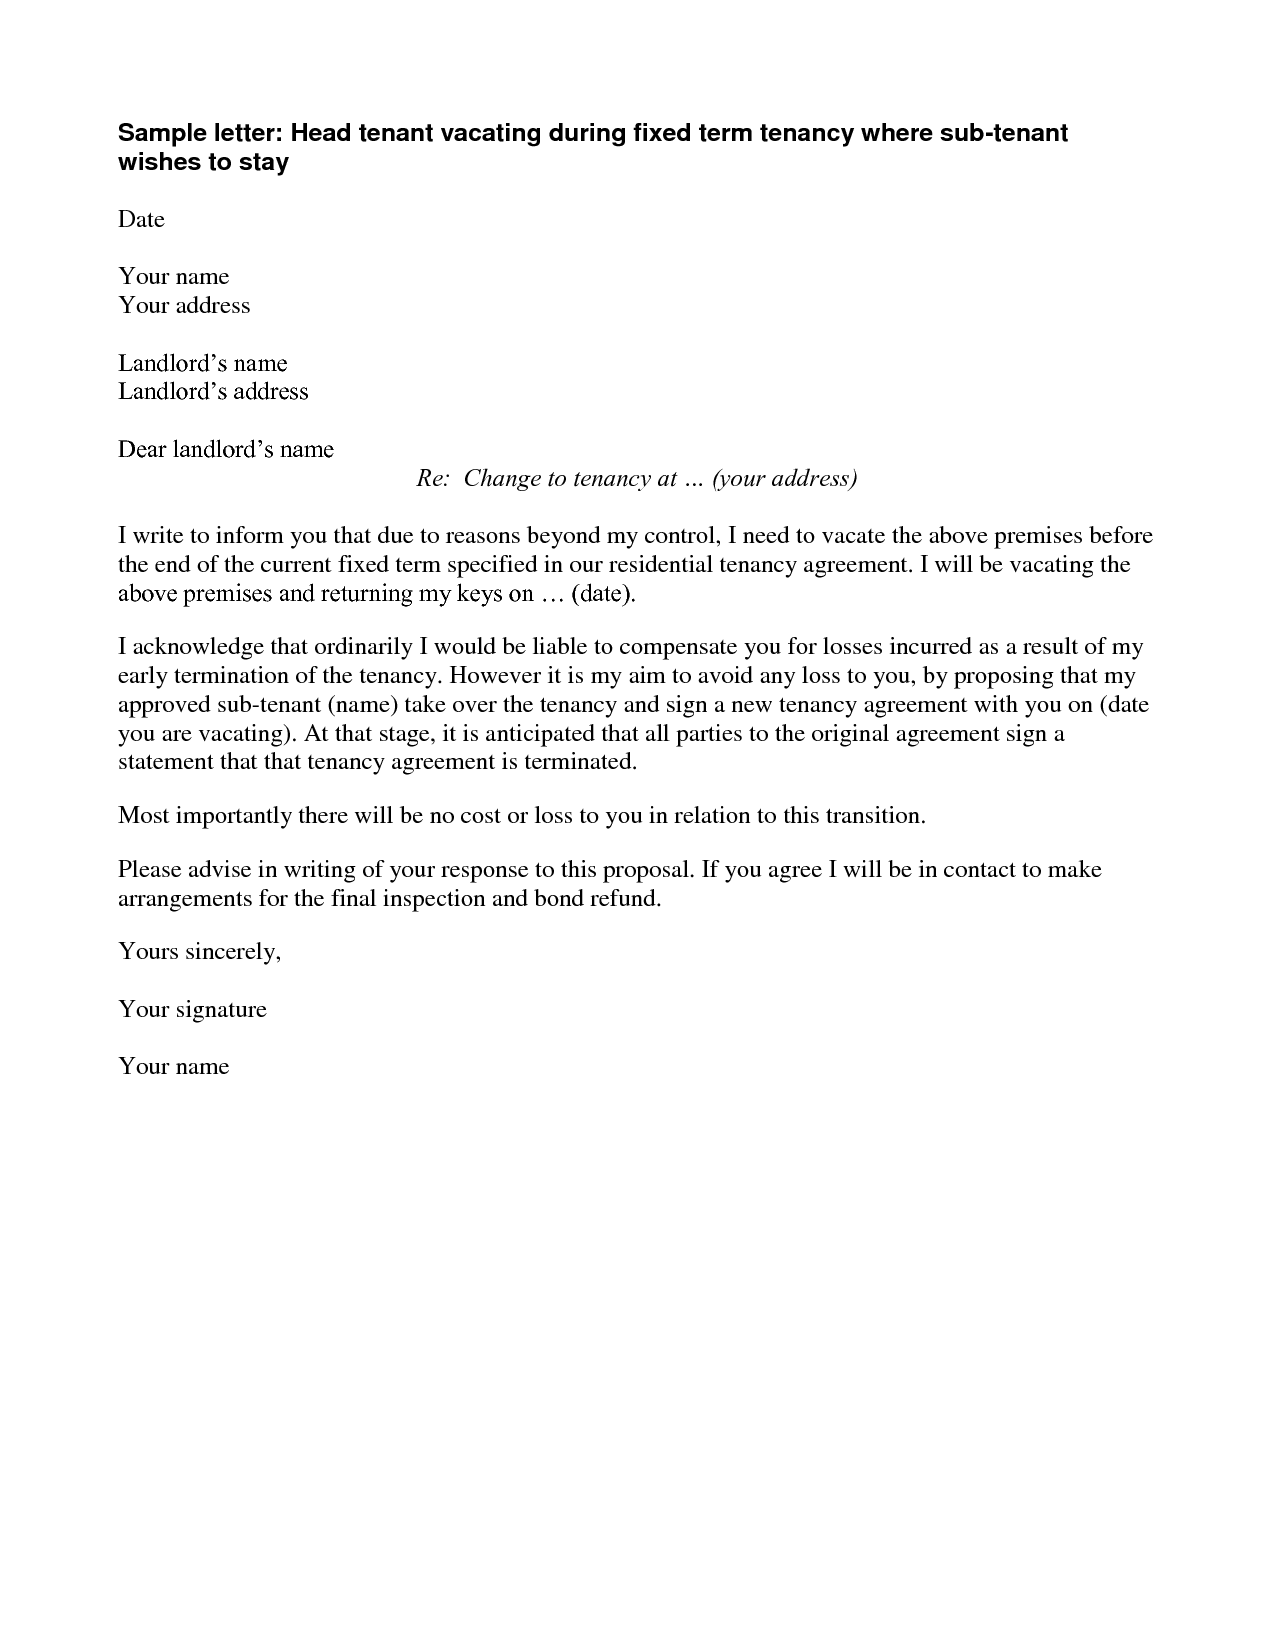 Agreement termination letter - This contract termination letter ...